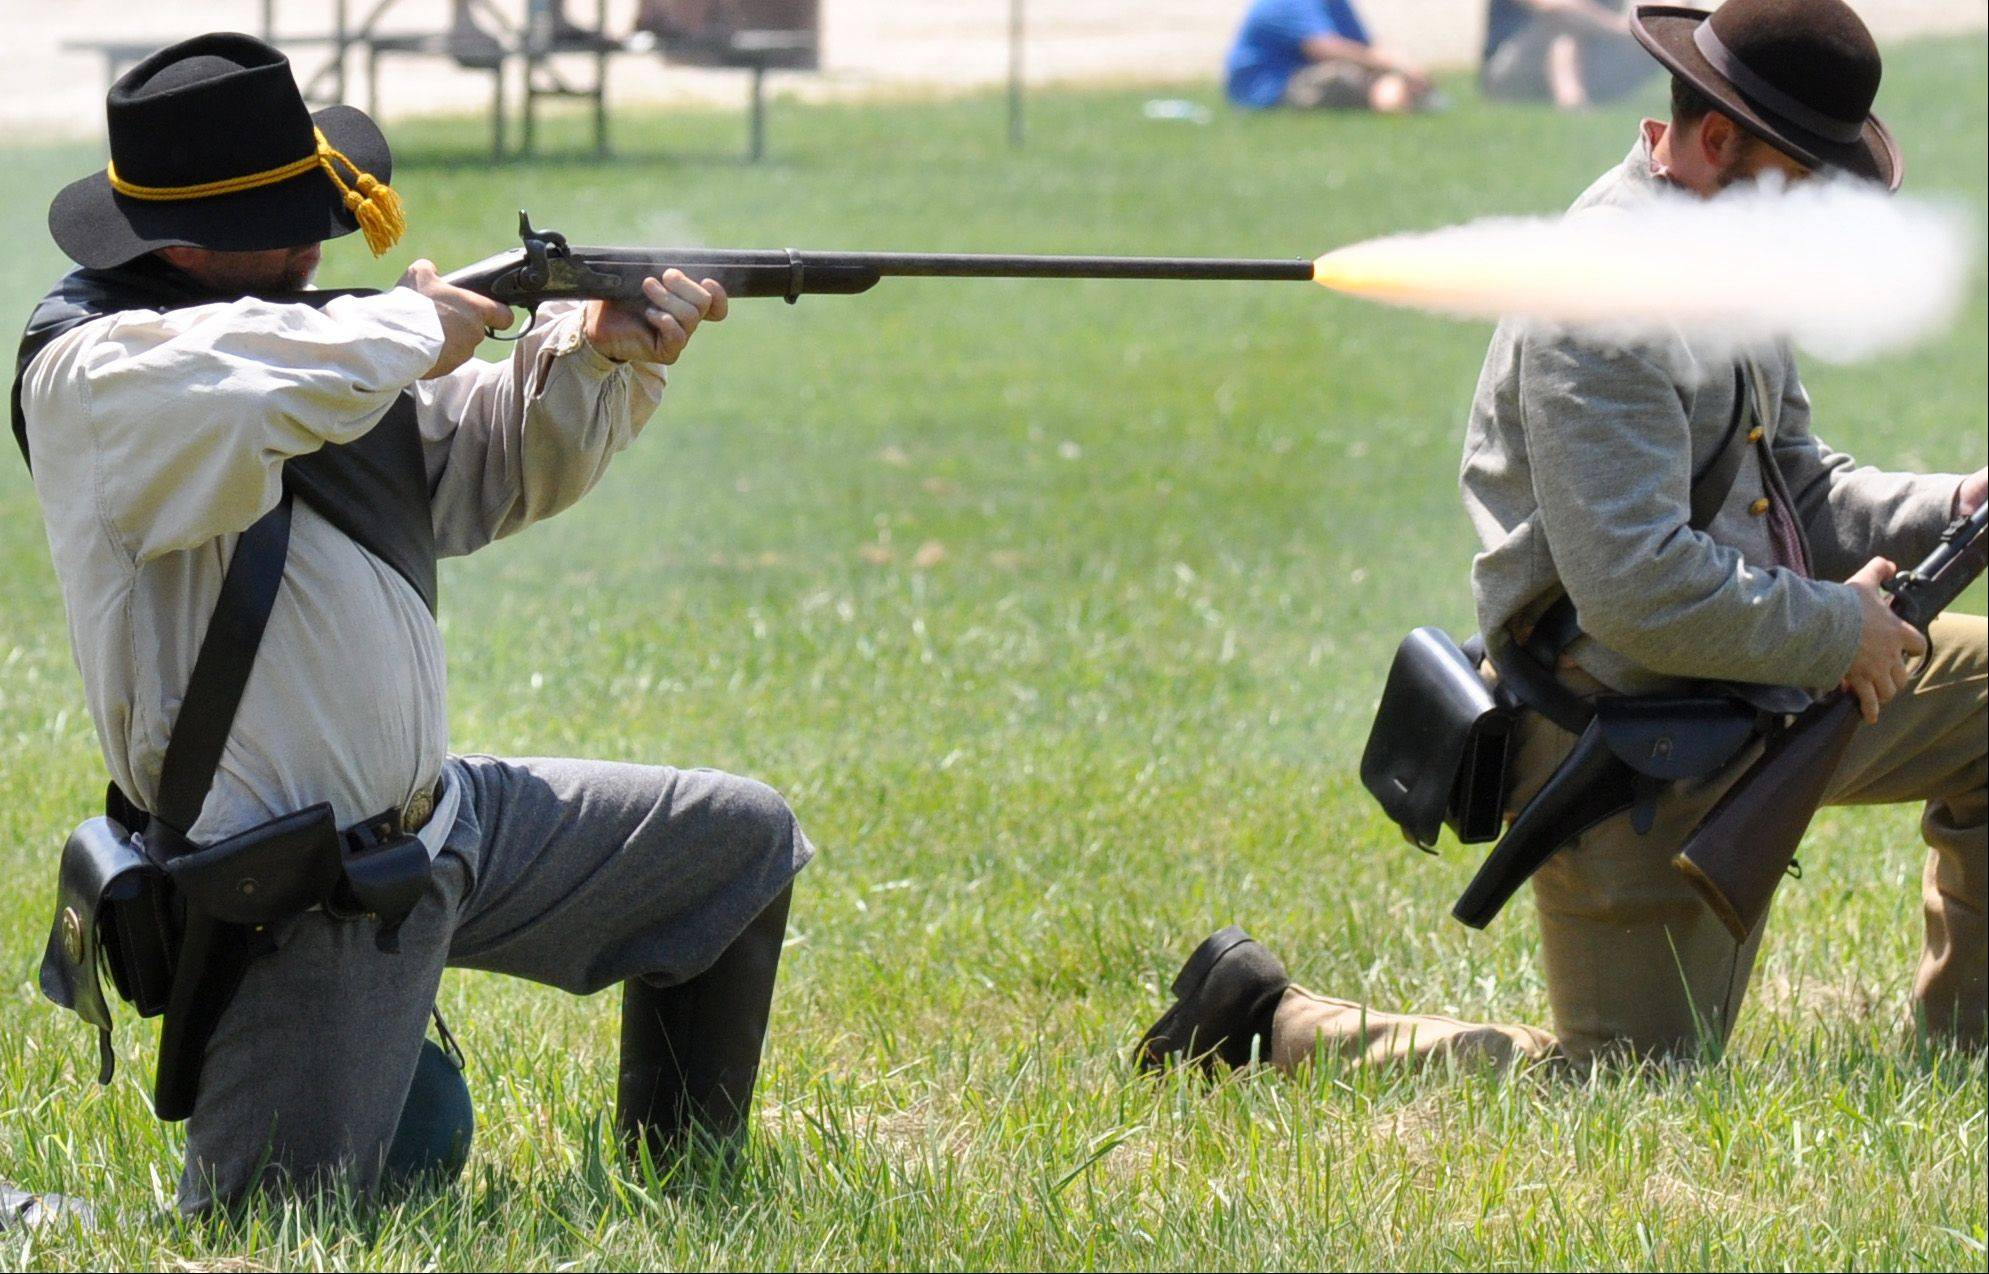 A confederate soldier fires upon the Union Calvary during a battle re-enactment at Civil War Days held at the Lakewood Forest Preserve Sunday, July 14.